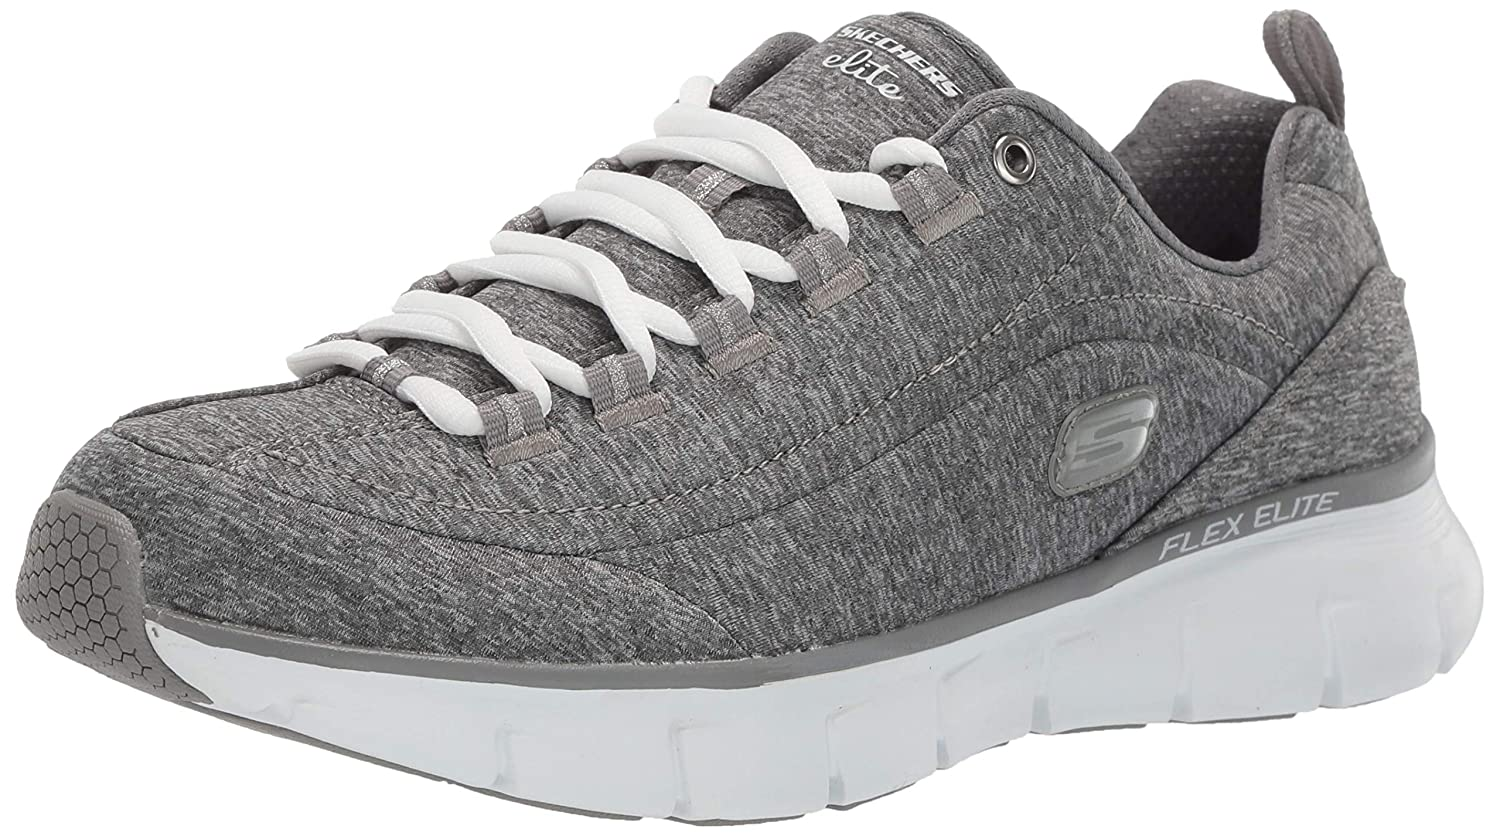 Grey Skechers Women's Synergy 3.0 Sneaker